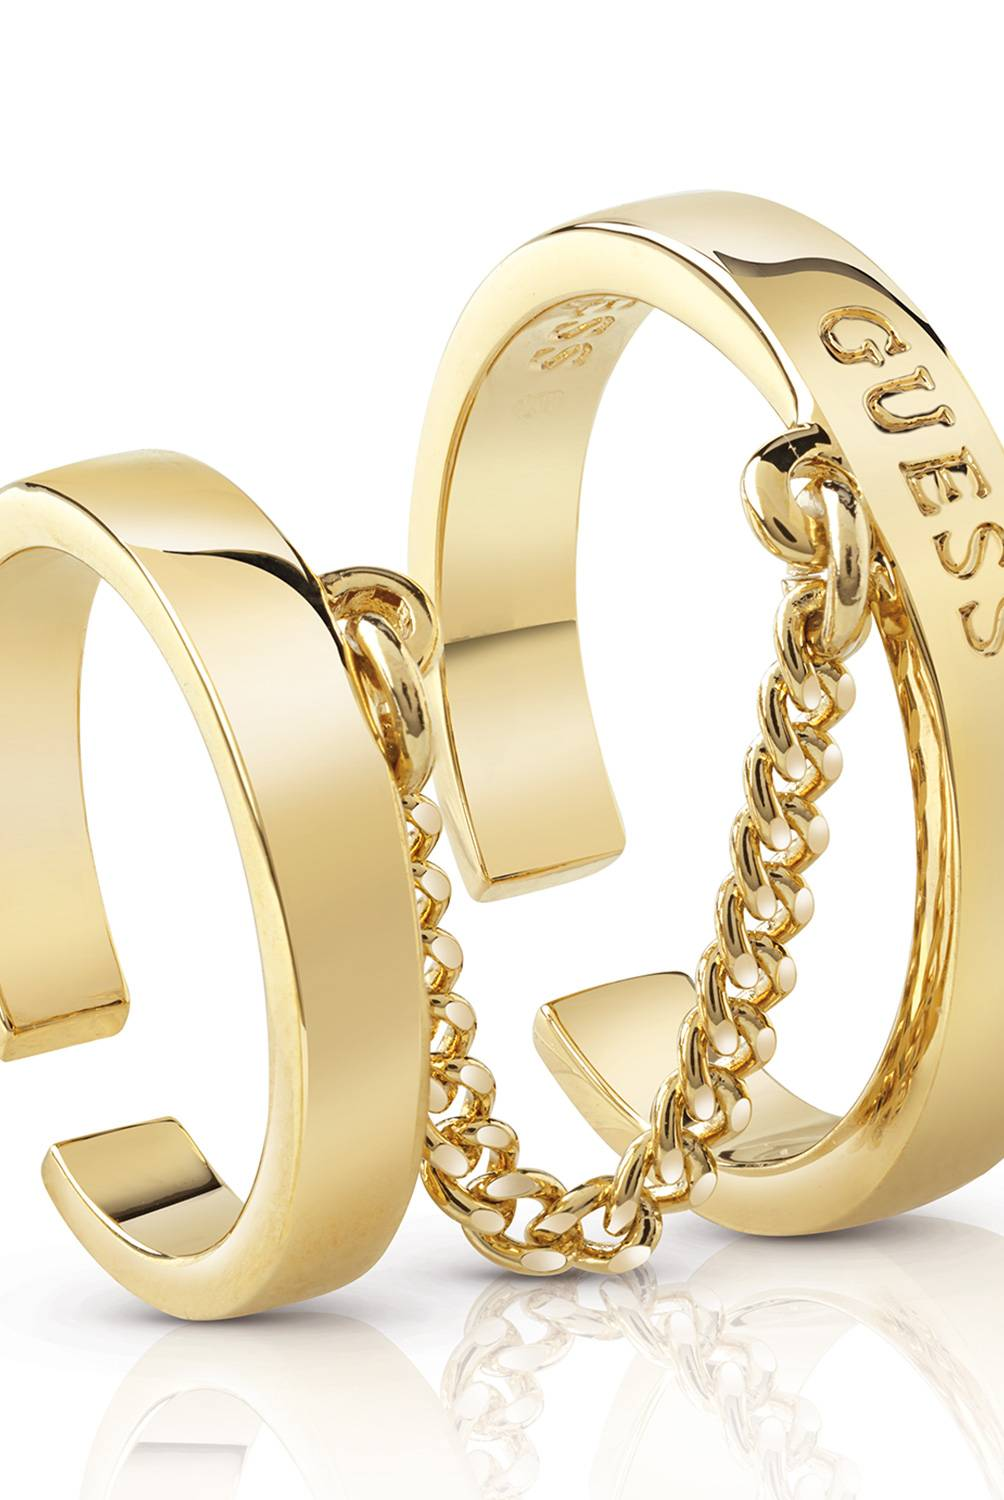 Guess - EC-ANILLO GUESS HOOPS DORADO